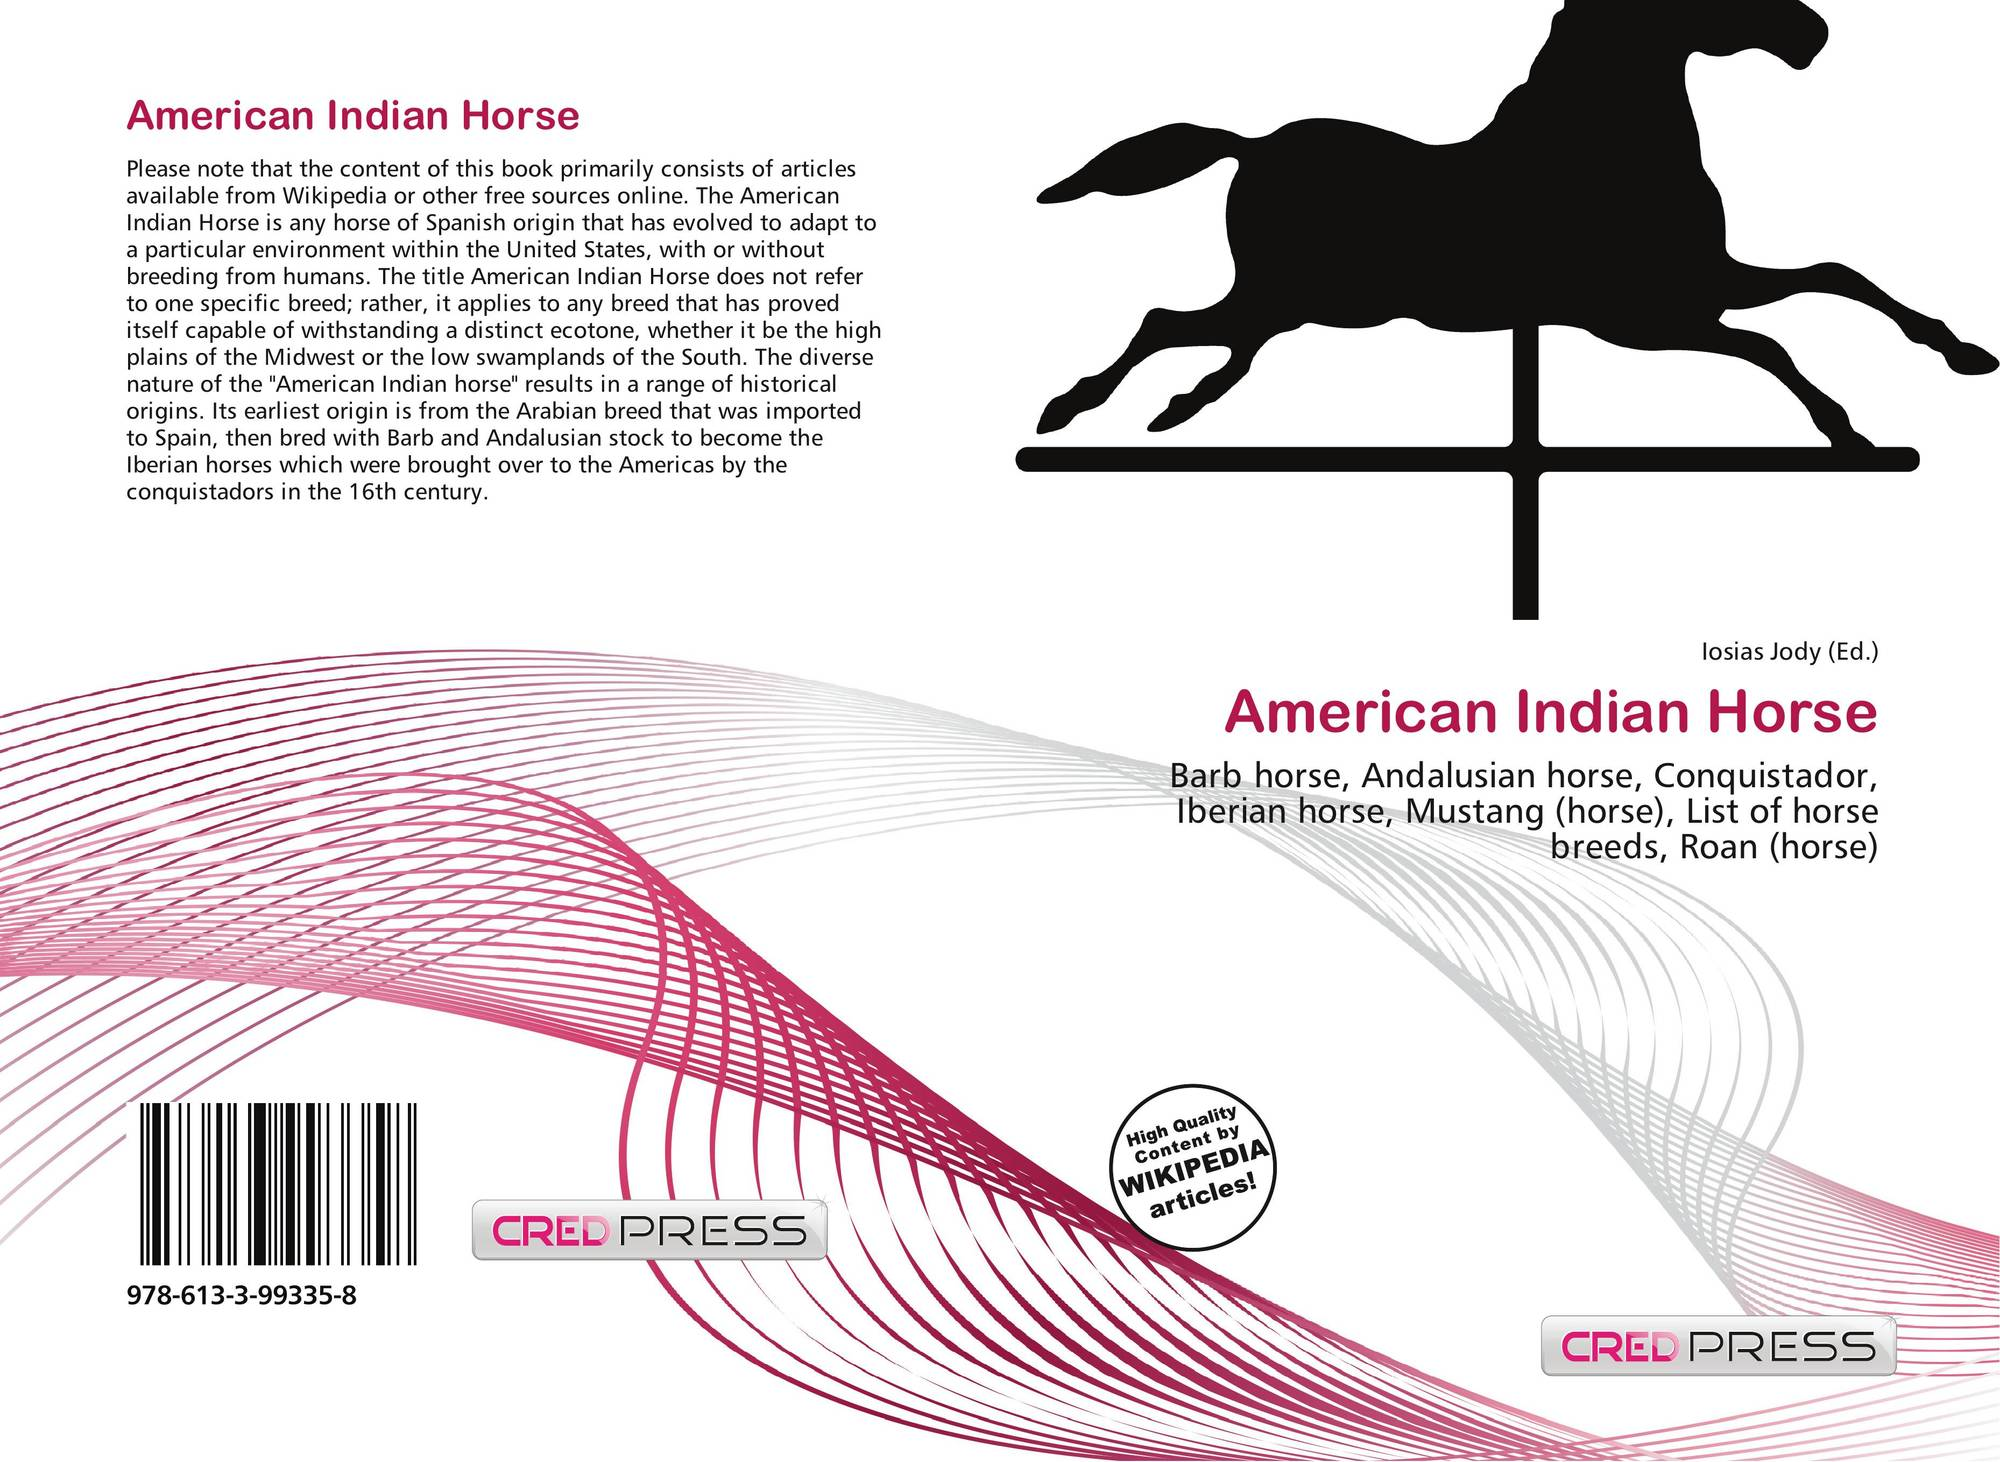 American Indian Horse 978 613 3 99335 8 6133993359 9786133993358